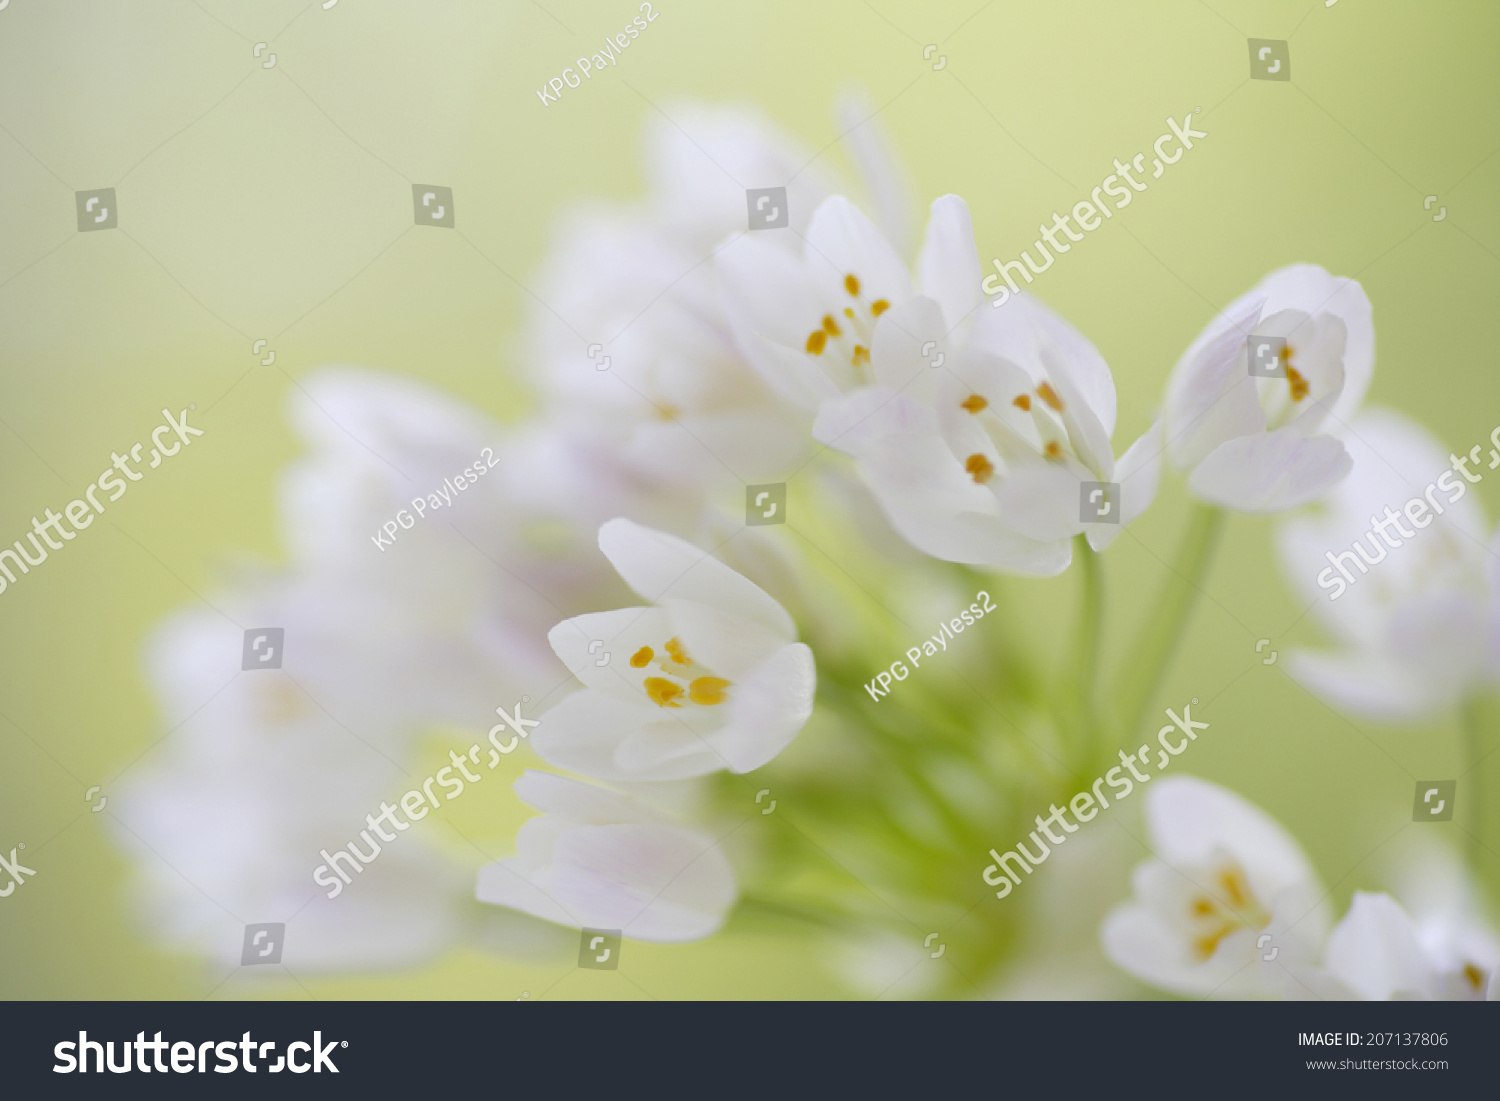 Royalty-free Small White Flower Bouquet #207137806 Stock Photo ...